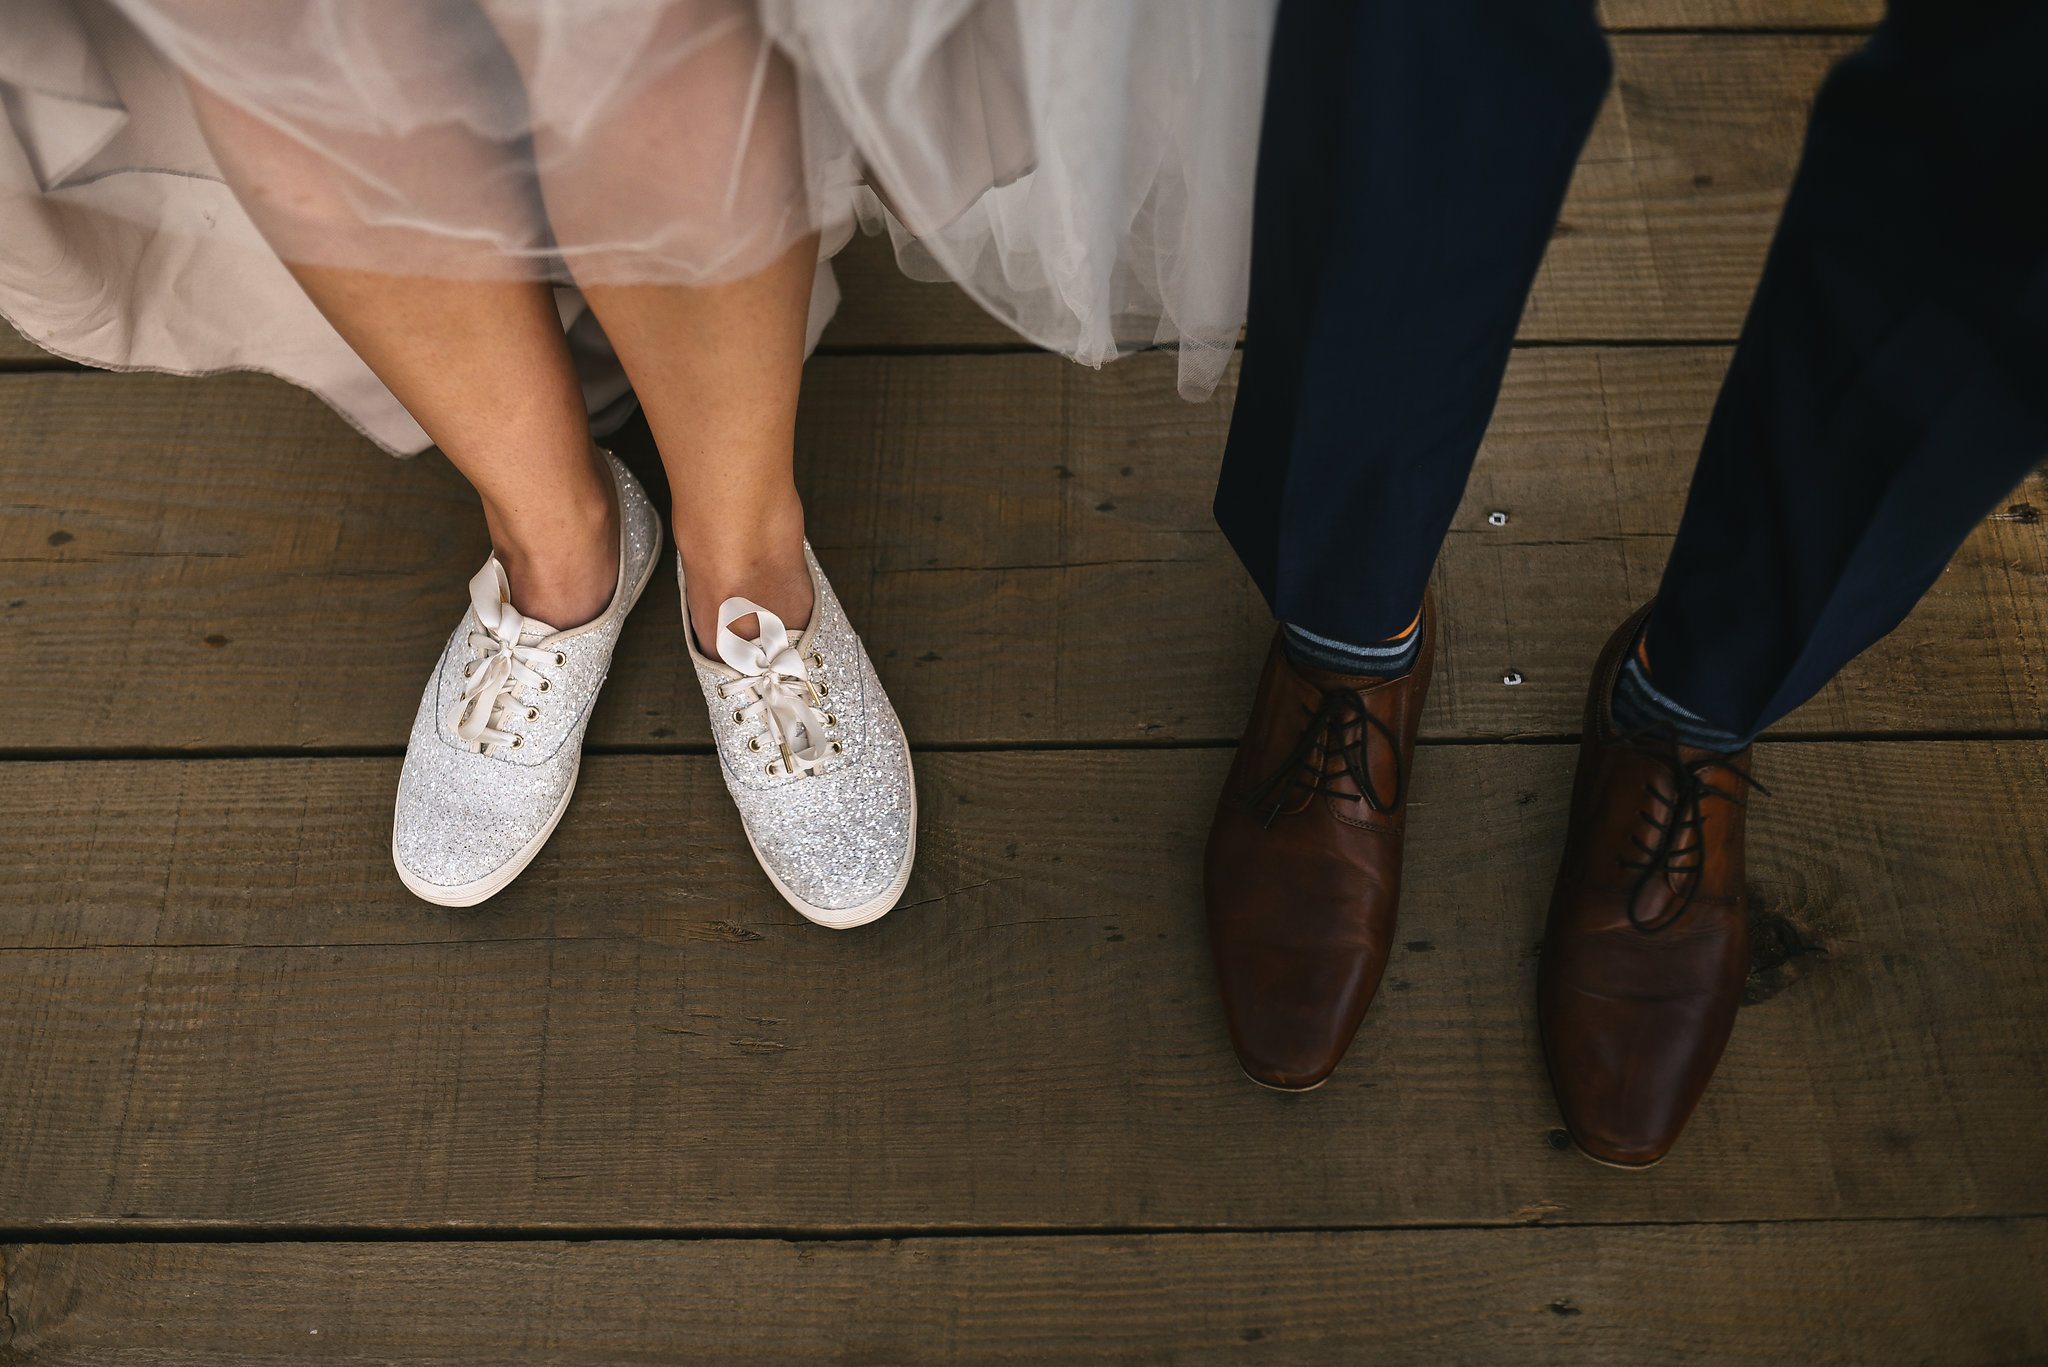 Baltimore, Canton, Modern, Outdoor Reception, Maryland Wedding Photographer, Romantic, Classic, Boston Street Pier Park, Shoes of bride and groom, glittery Keds sneakers, Stripped socks